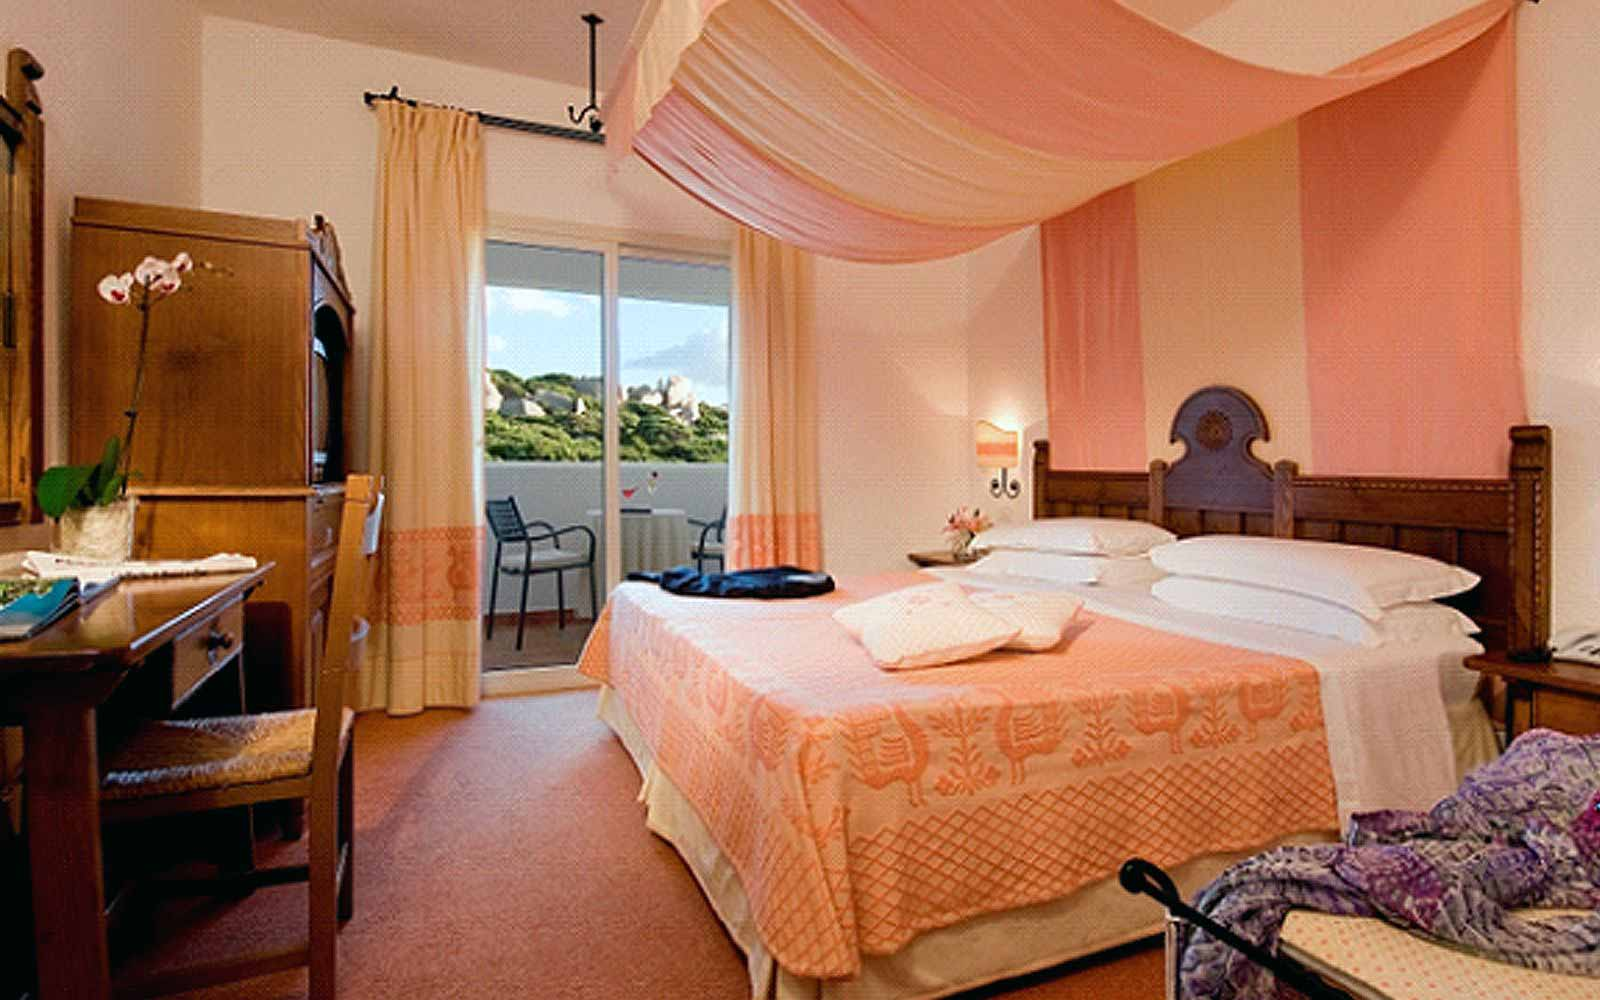 Classic room at the Colonna Grand Hotel Capo Testa